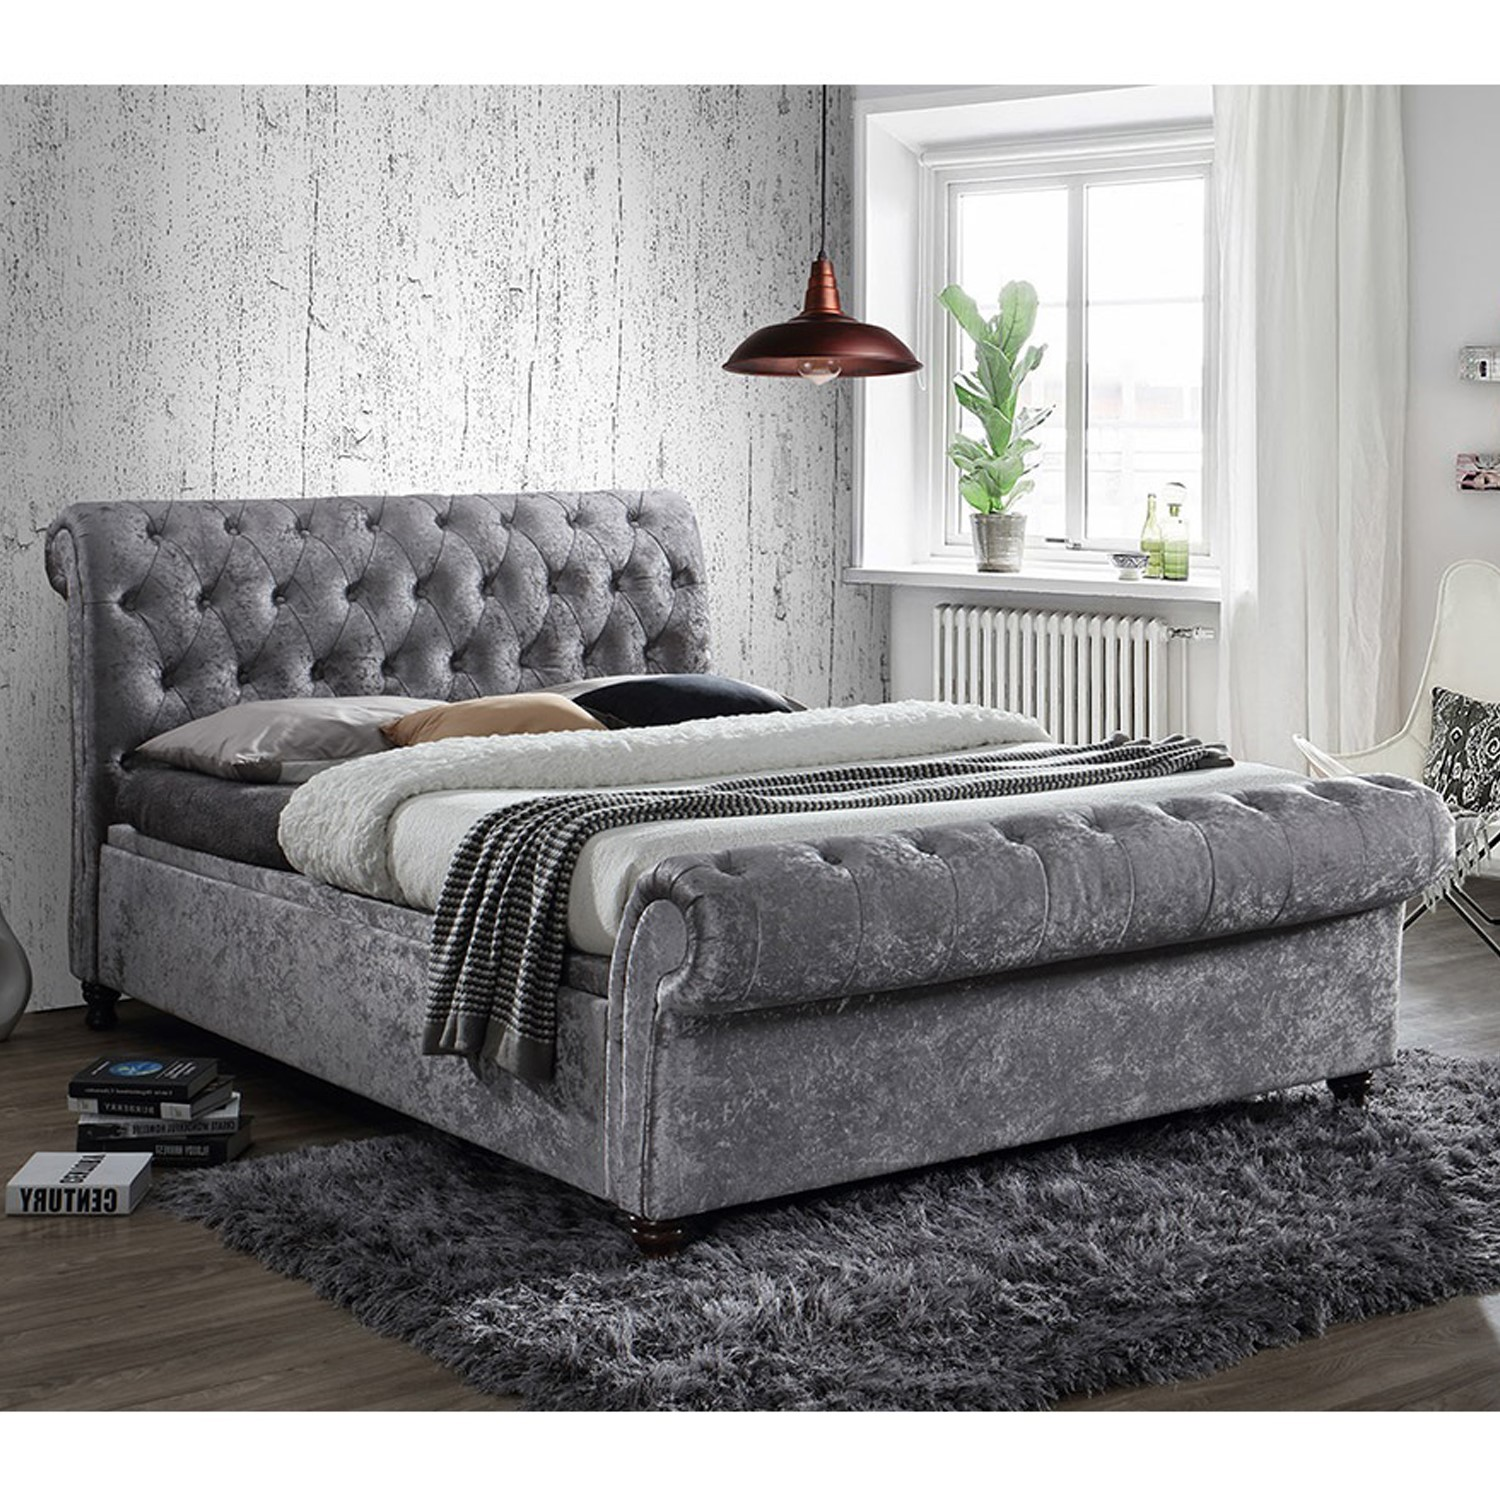 Birlea Castello Side Ottoman Double Bed Upholstered In